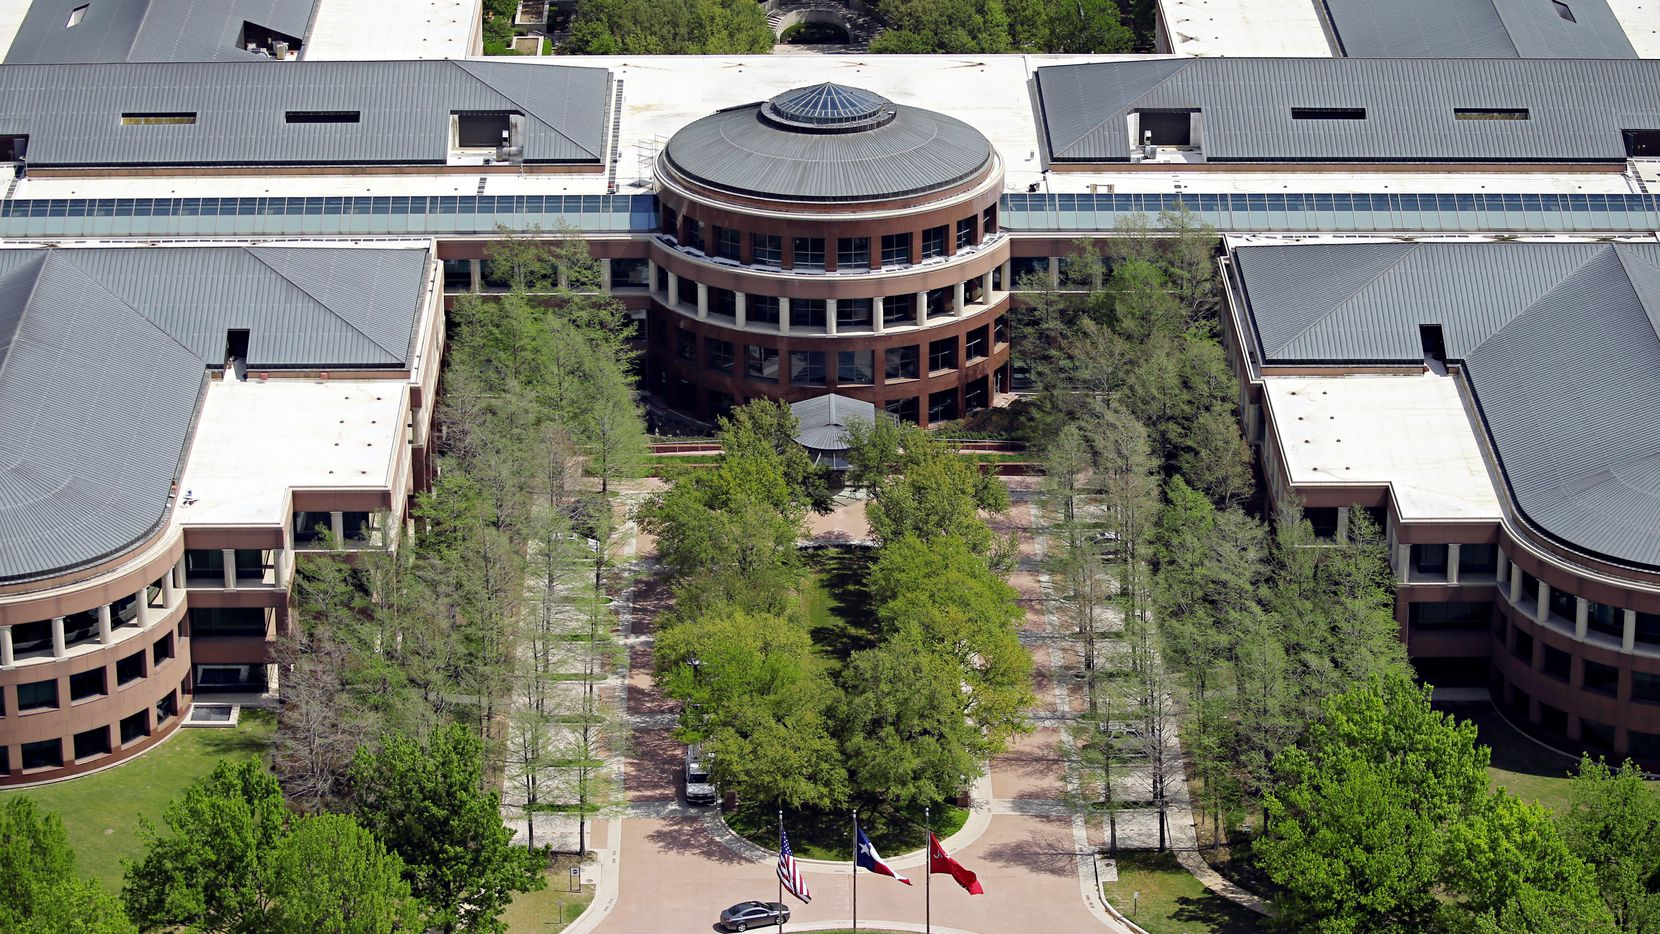 J.C. Penney's corporate headquarters is in West Plano. NTT Data is looking at leasing part of the property. (File Photo/Staff)